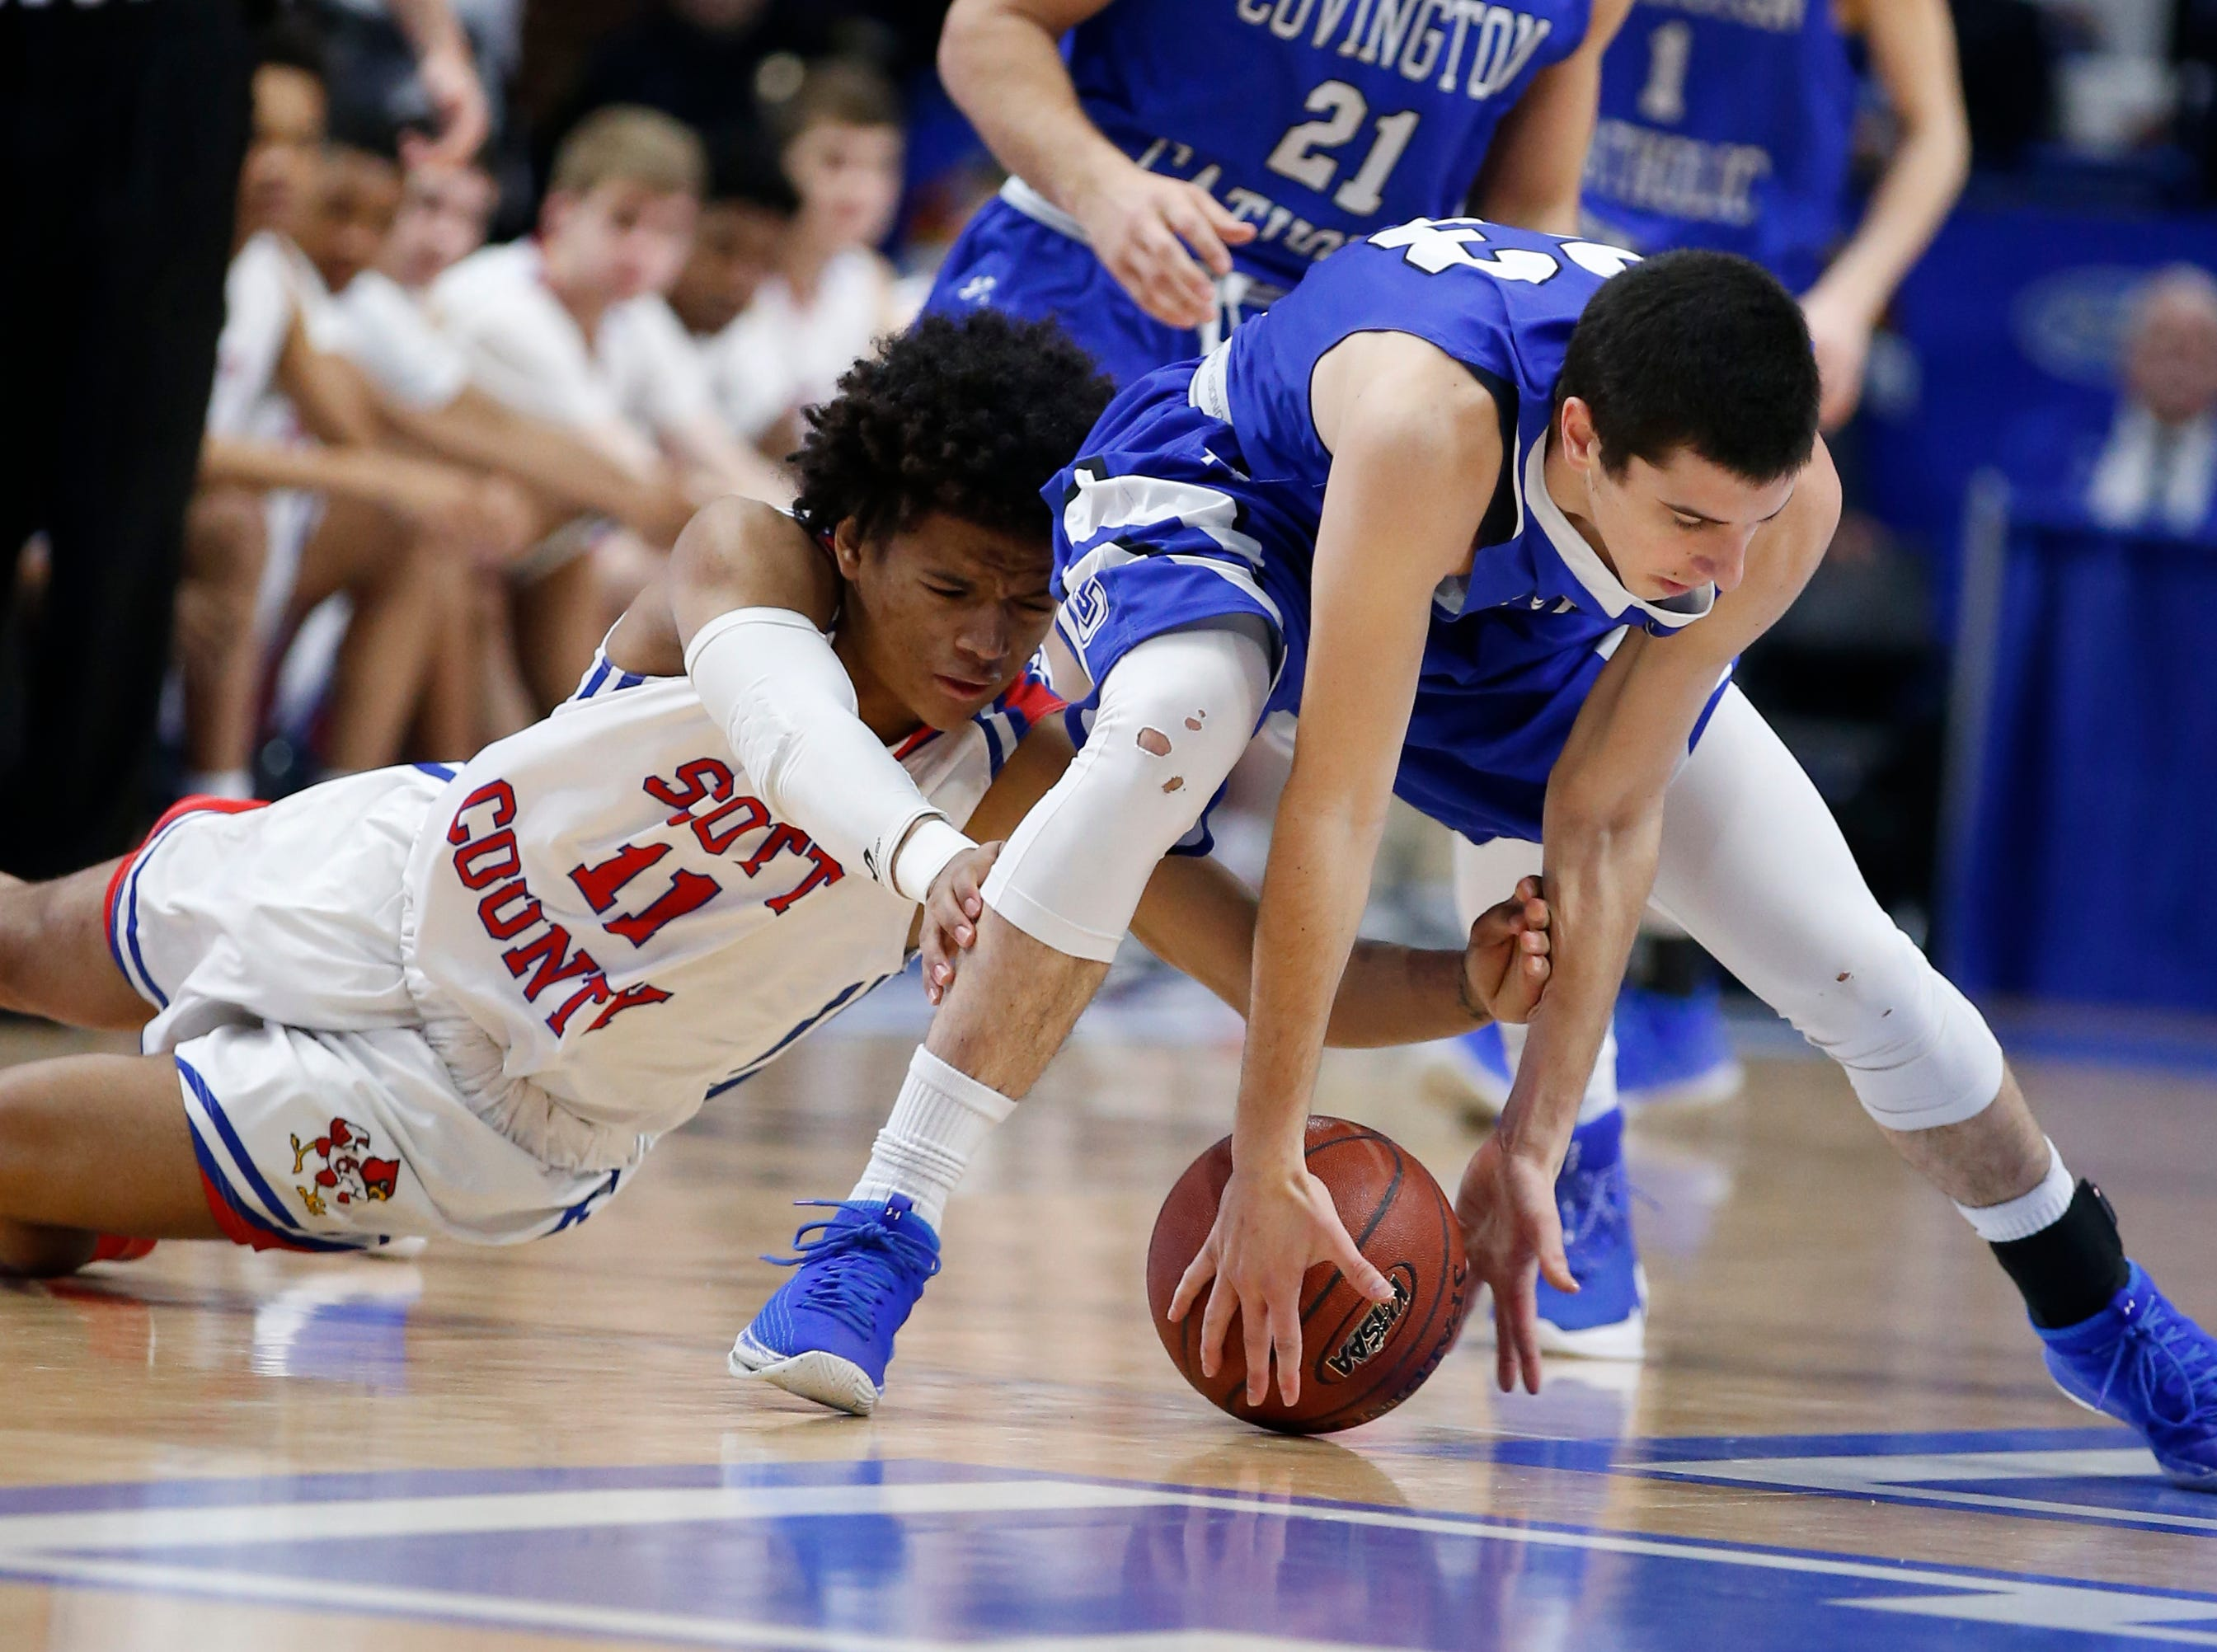 Covington Catholic's Casey Nowak, 23, right, scoops up a loose ball in front of Scott County's Diablo Stewart, 11, left, during the championship game of the Whitaker Bank/KHSAA Boys' Sweet 16 basketball tournament played at Rupp Arena in Lexington, Ky. Sunday March 18, 2018.